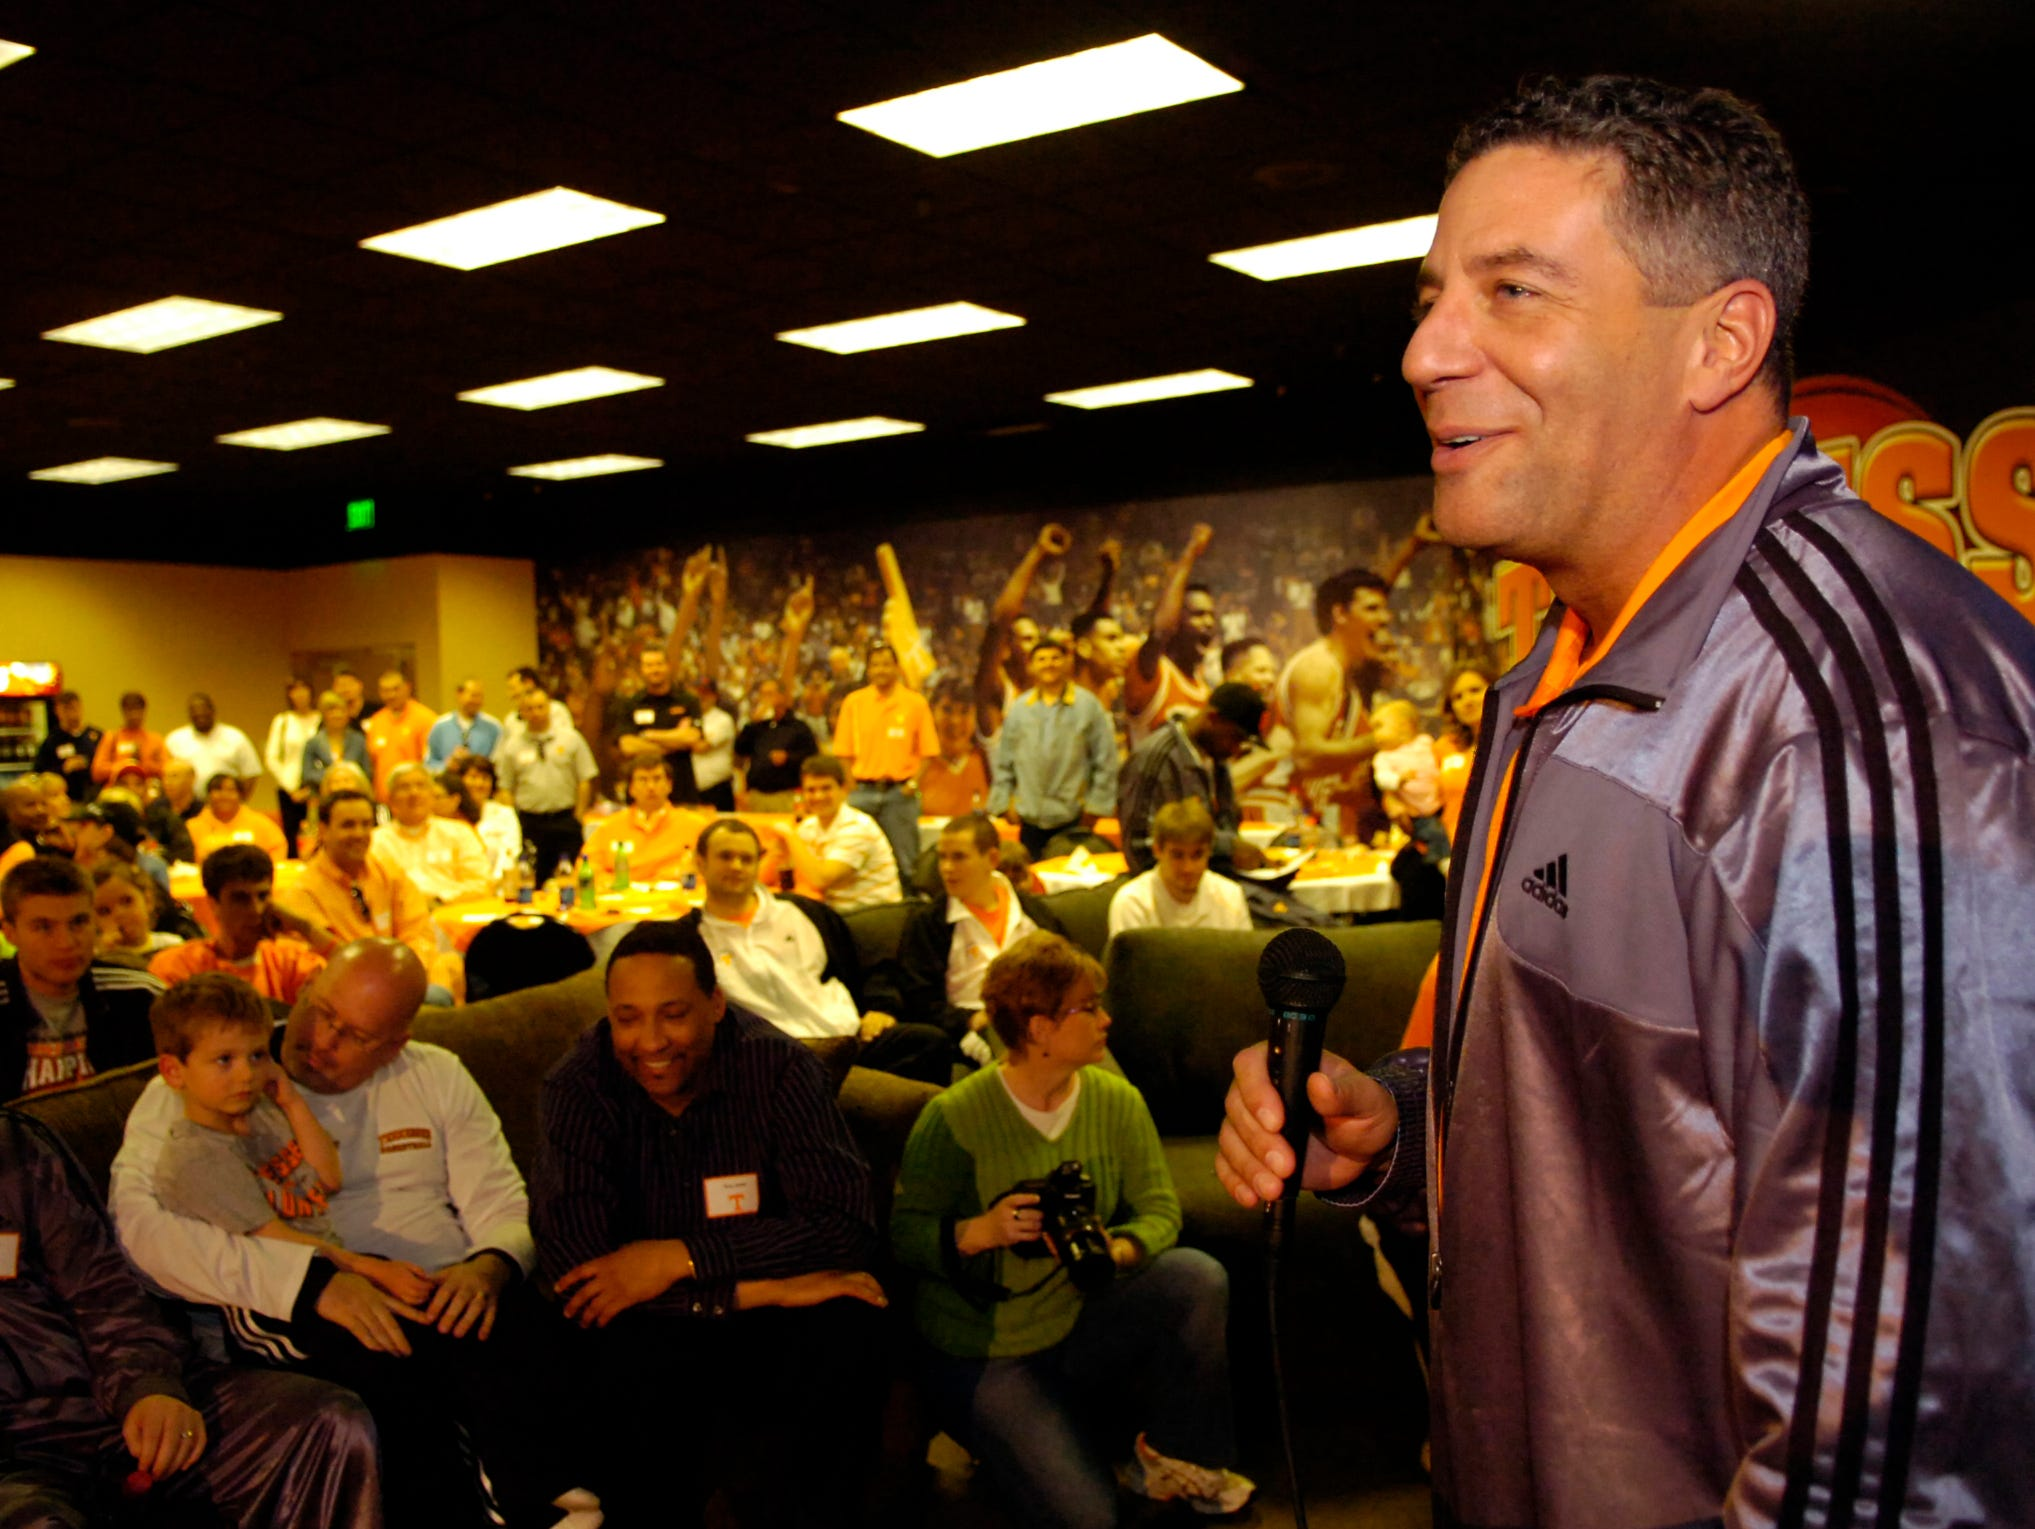 Tennessee basketball coach Bruce Pearl addresses the small crowd gathered at Thompson-Boling Arena Sunday after Fourth-ranked Tennessee received a No. 2 seed in the East Region of the 2007 NCAA men's basketball tournament.